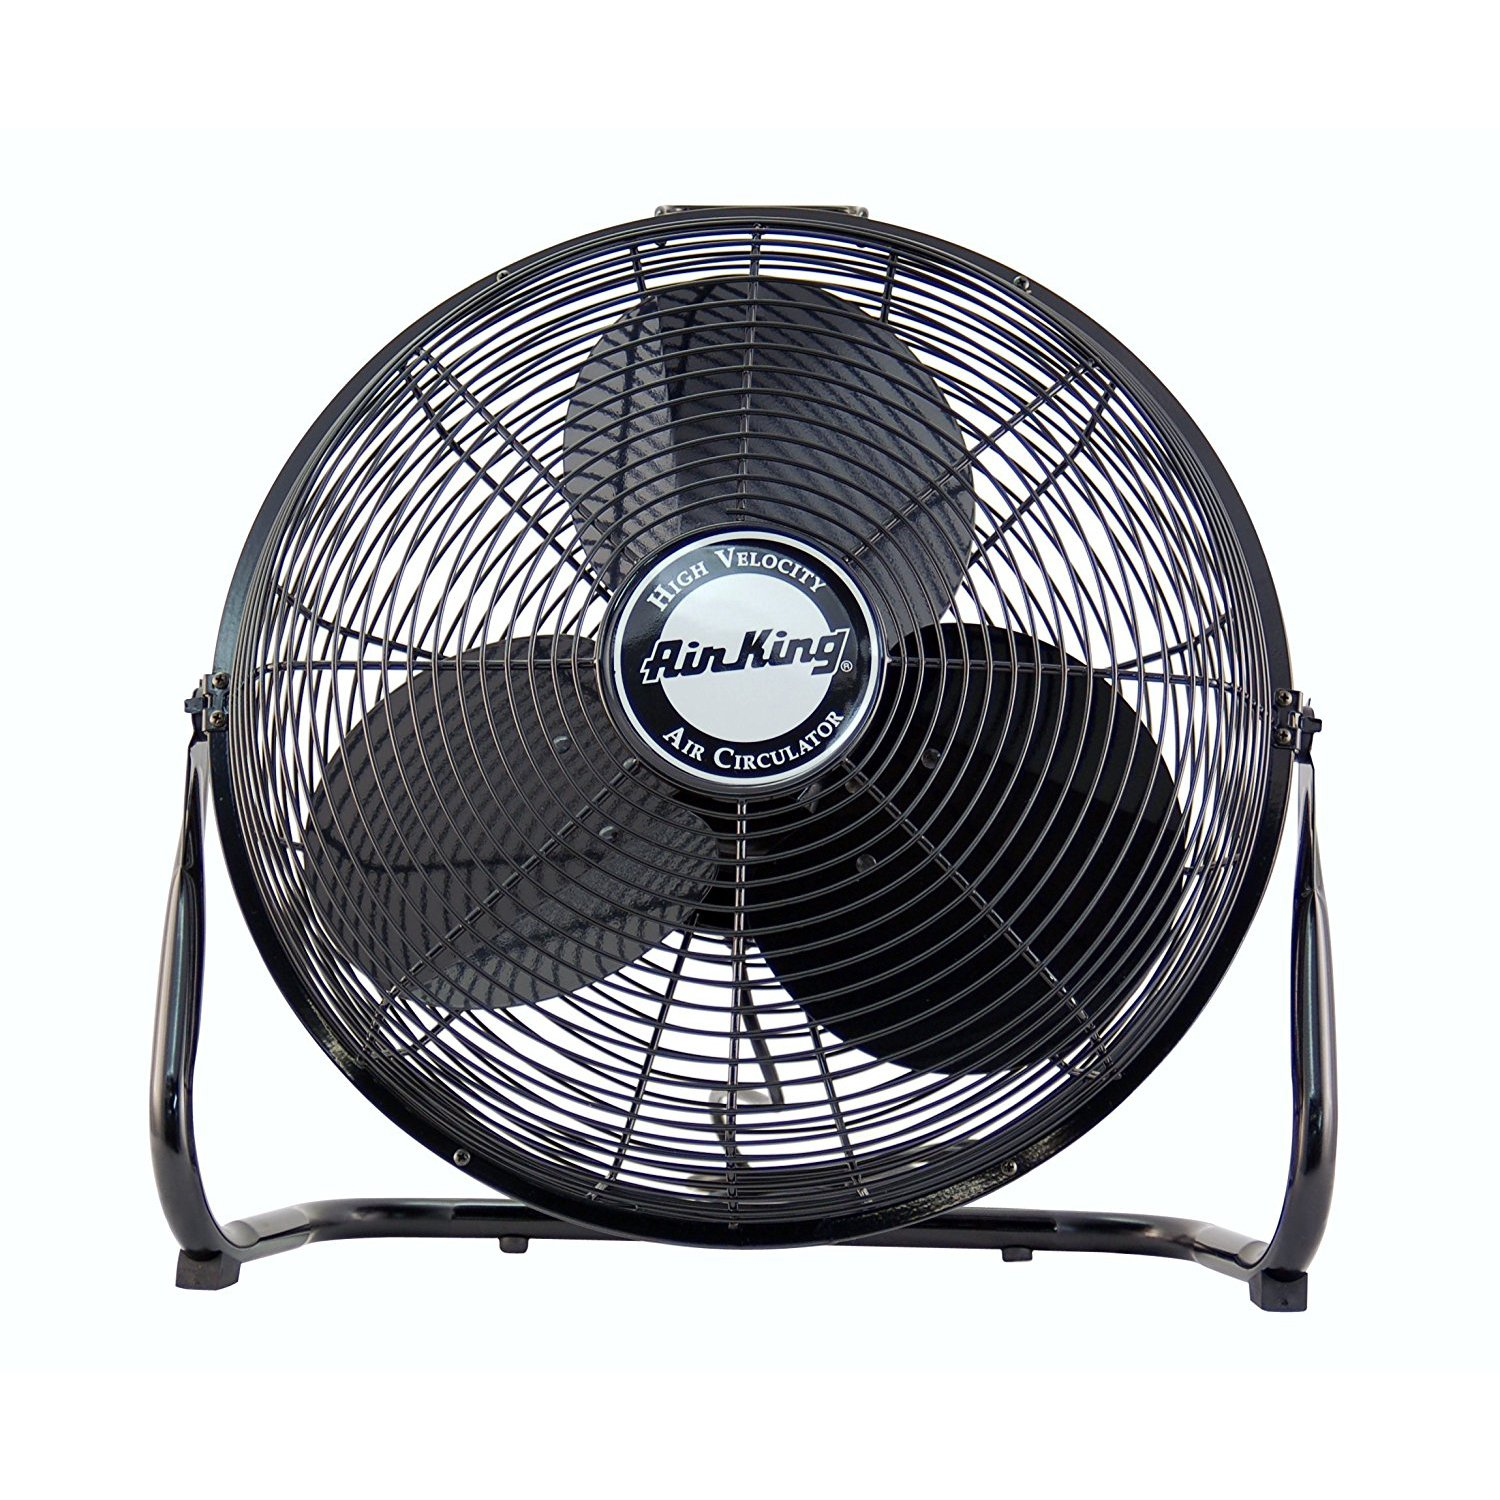 Image of Air King 3 Speed 1/20 HP 120 Volt 14 Inch Enclosed Pivoting Floor Fan 9214